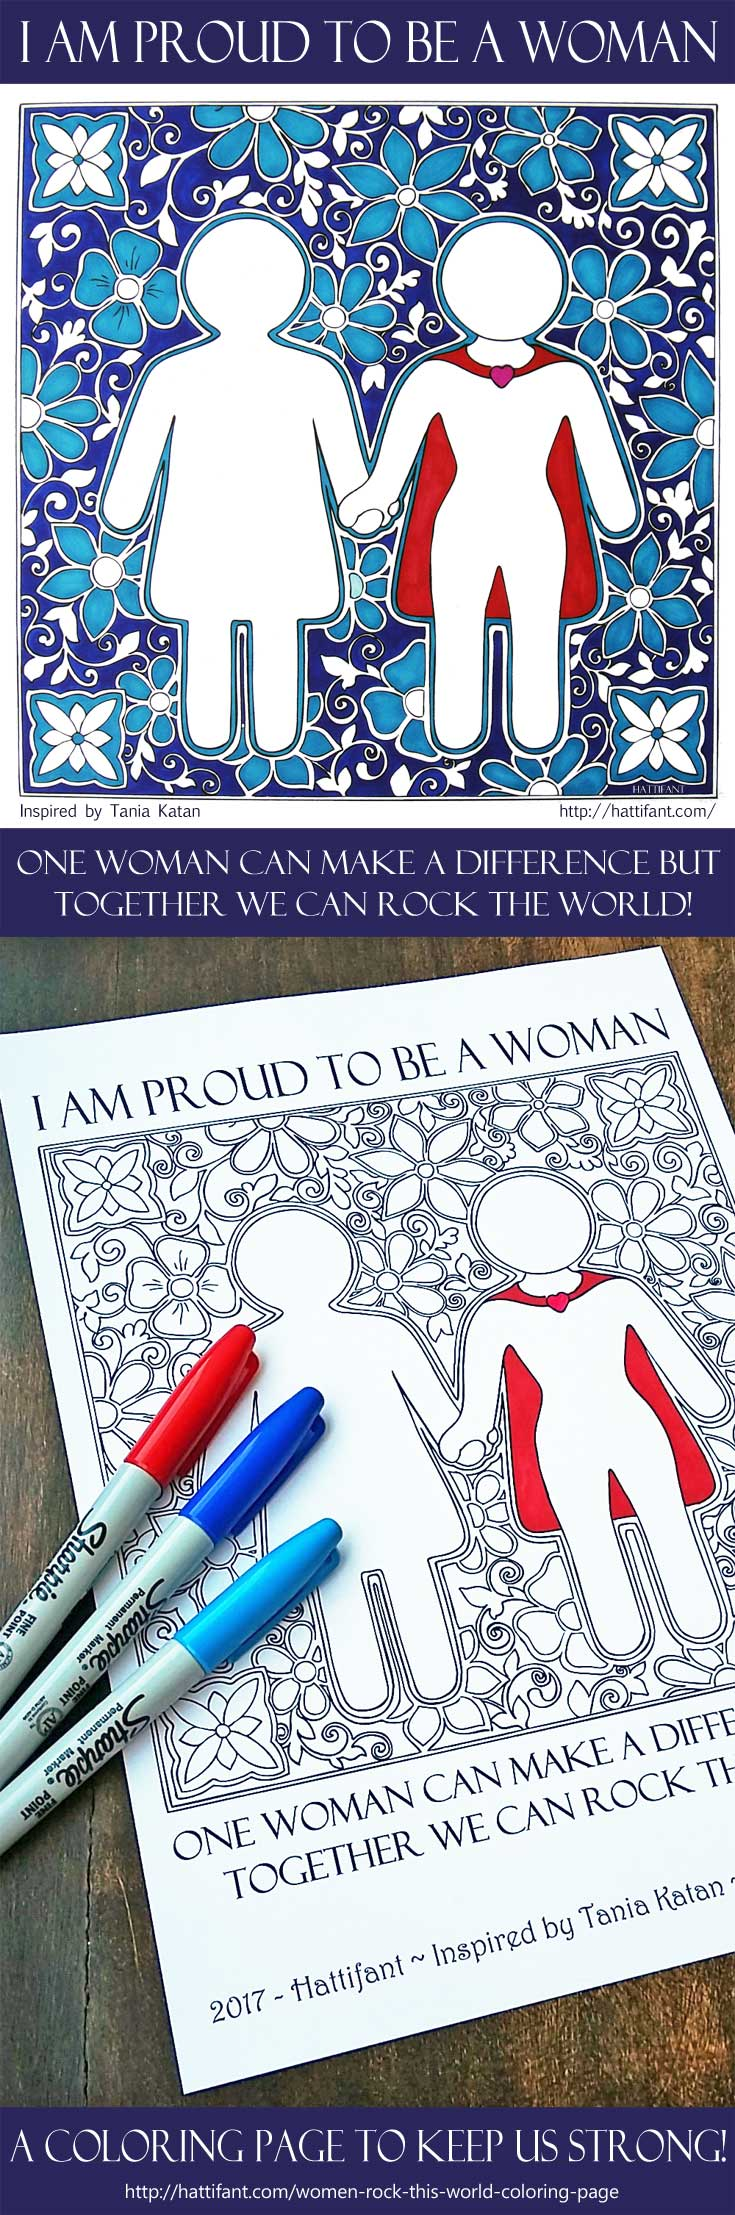 Hattifant's Proud to be a woman Coloring Page inspired by ItWasNeverADress